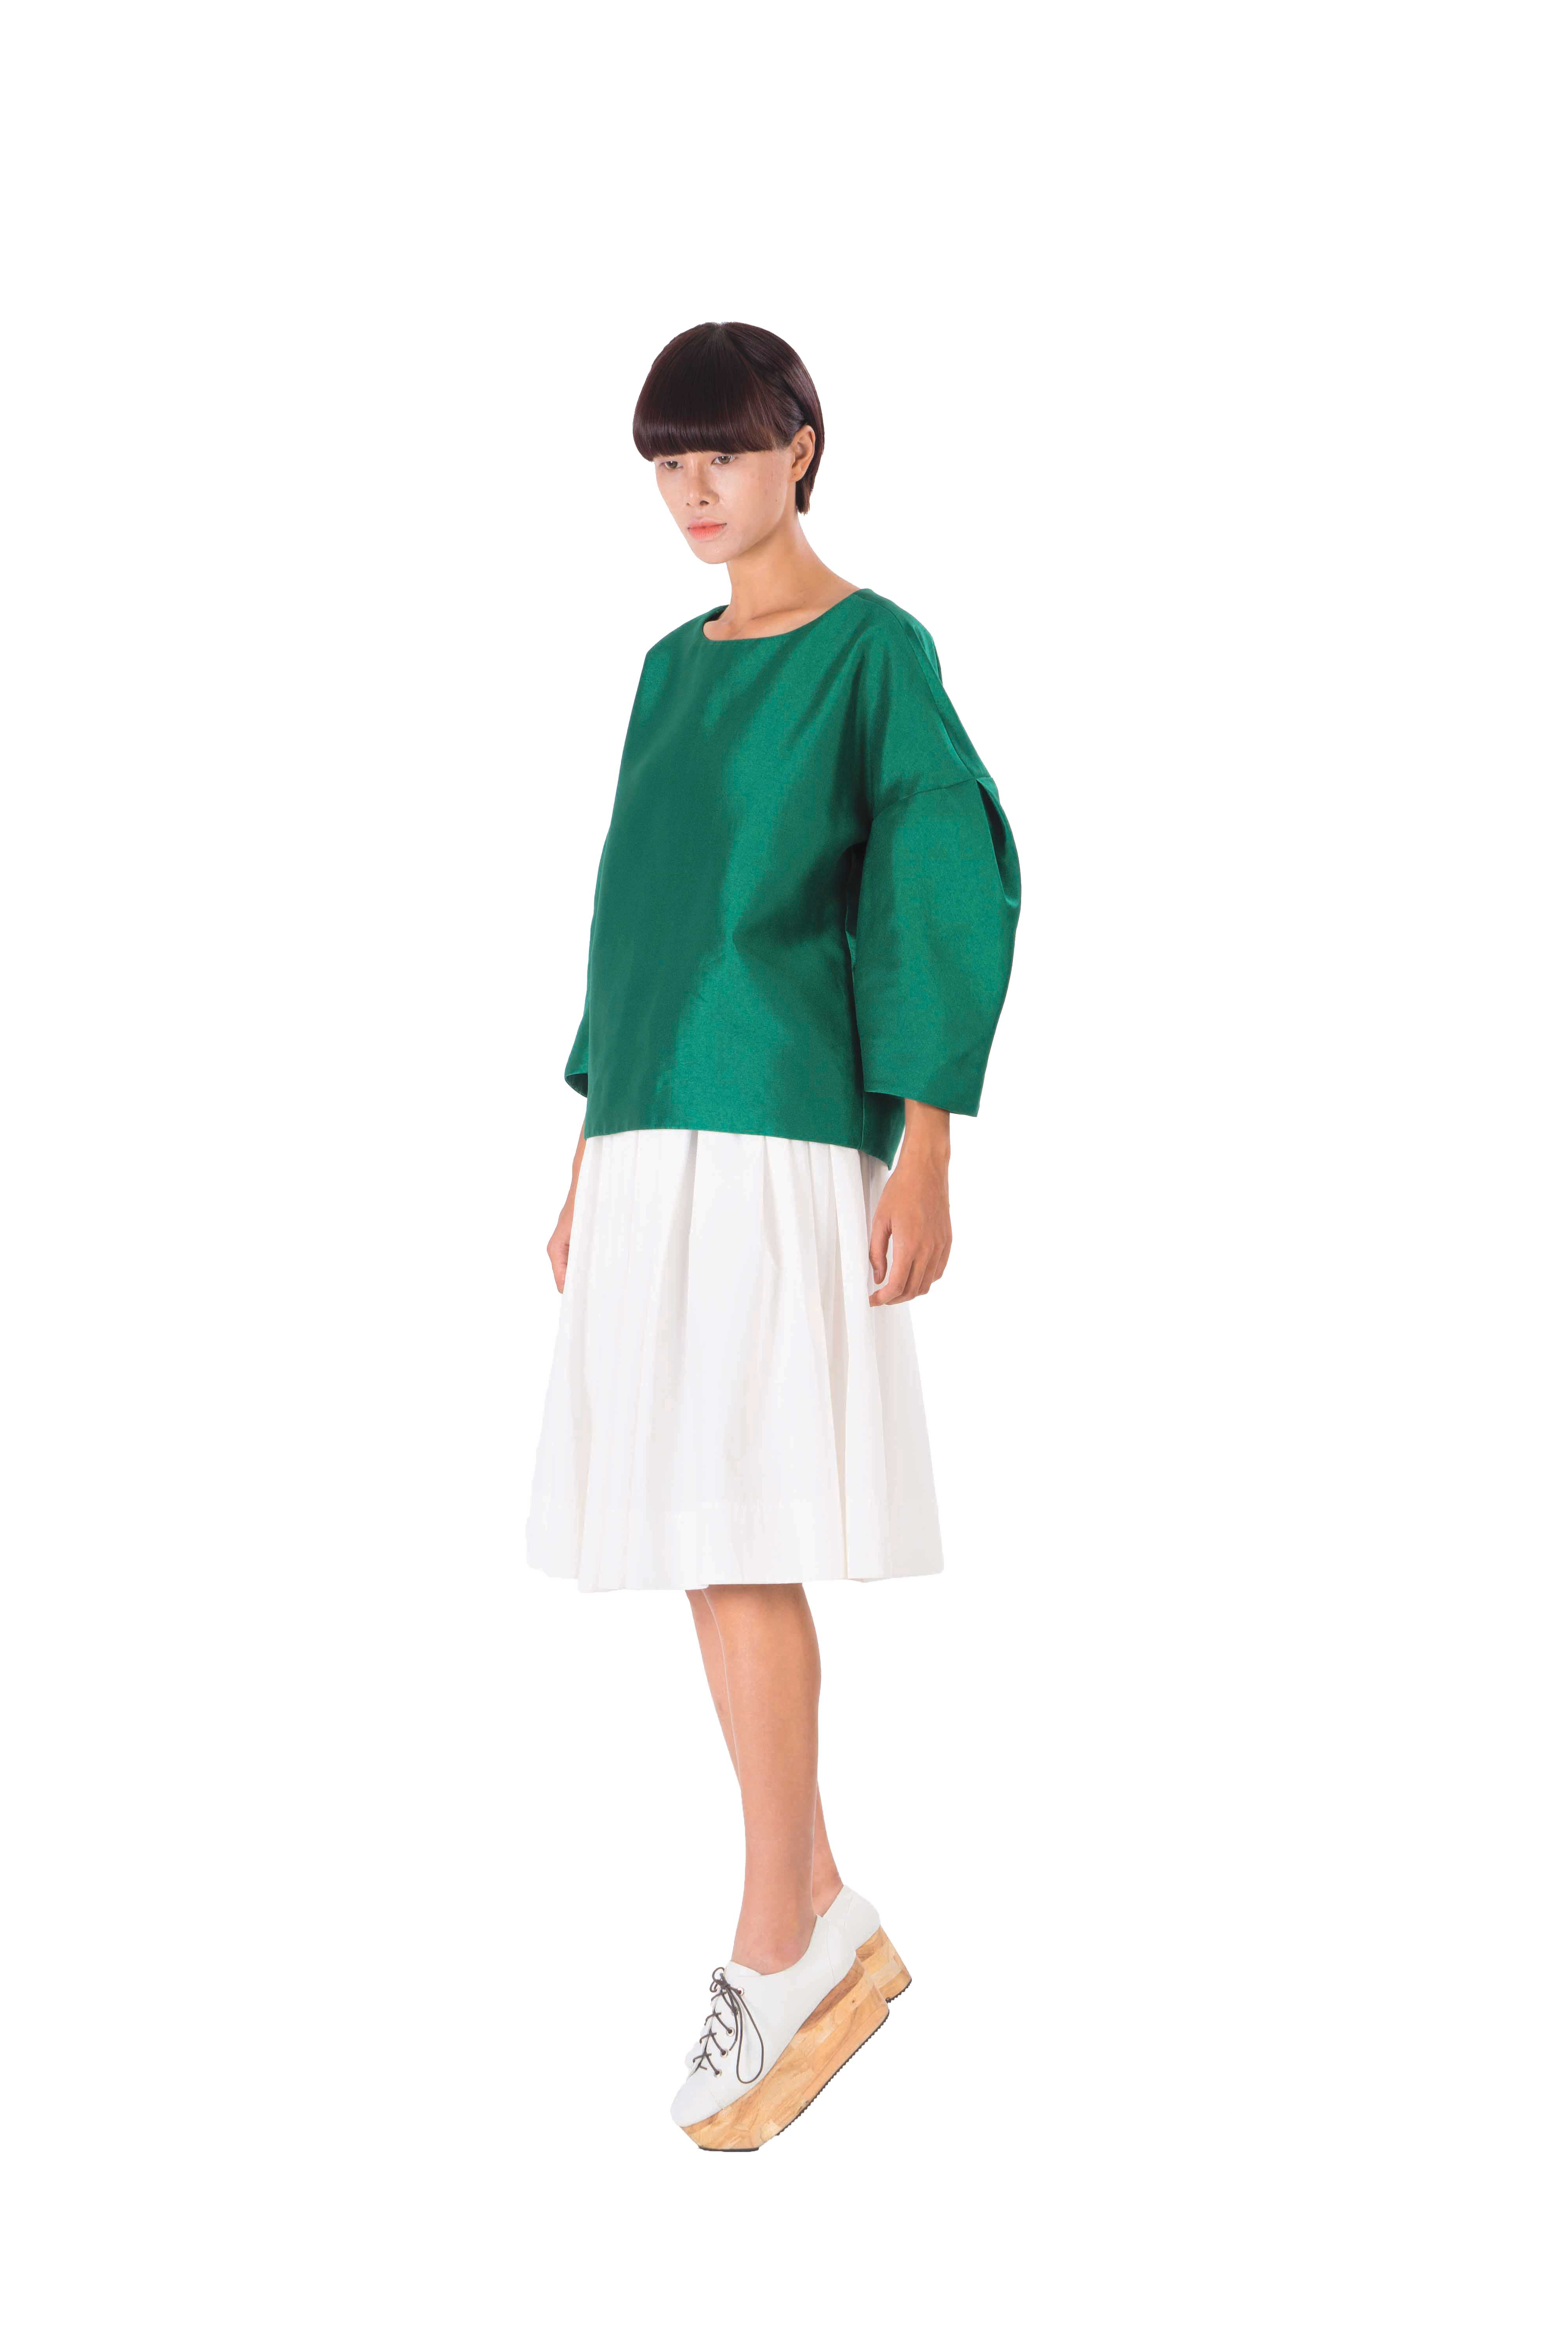 Green taffeta loose fitting top